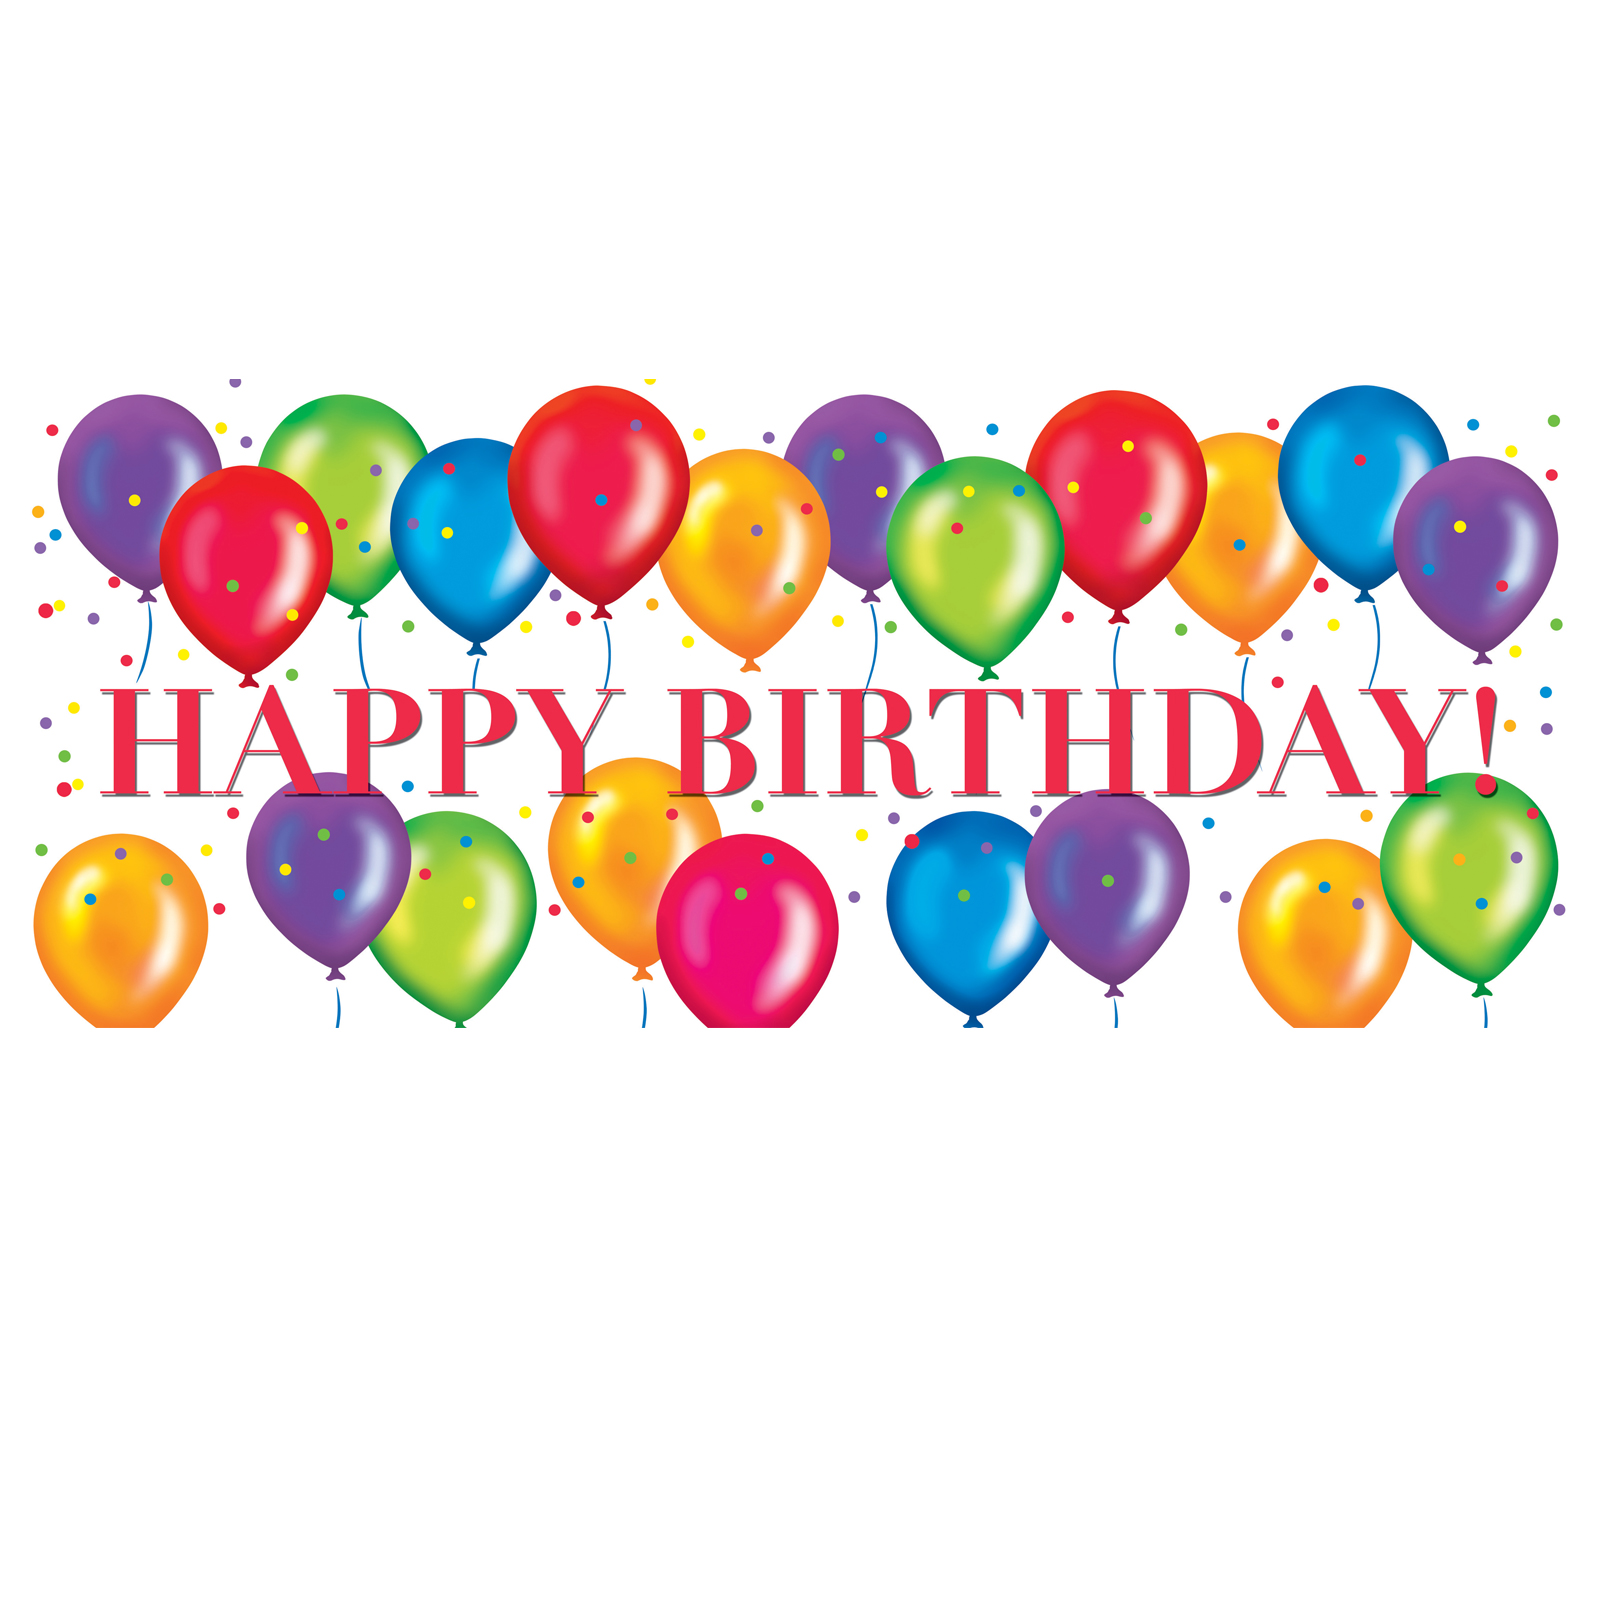 1600x1600 Free Happy Birthday Graphics Birthday Freebies! Happy Birthday